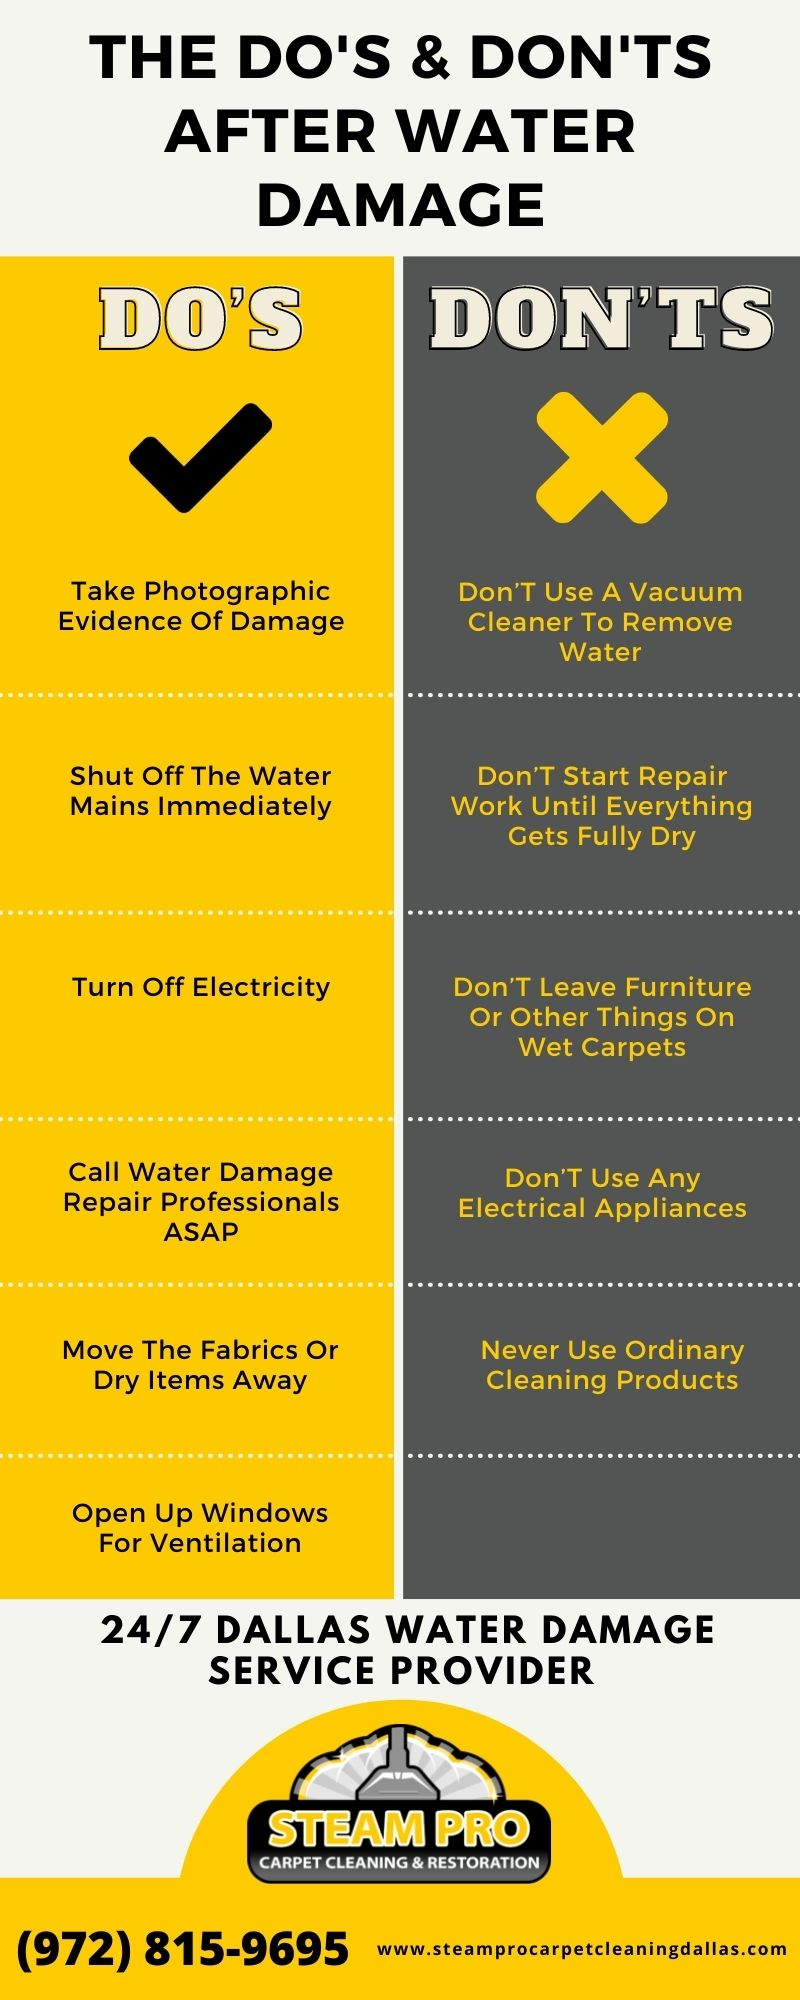 The Do's & Don'ts After Water Damage